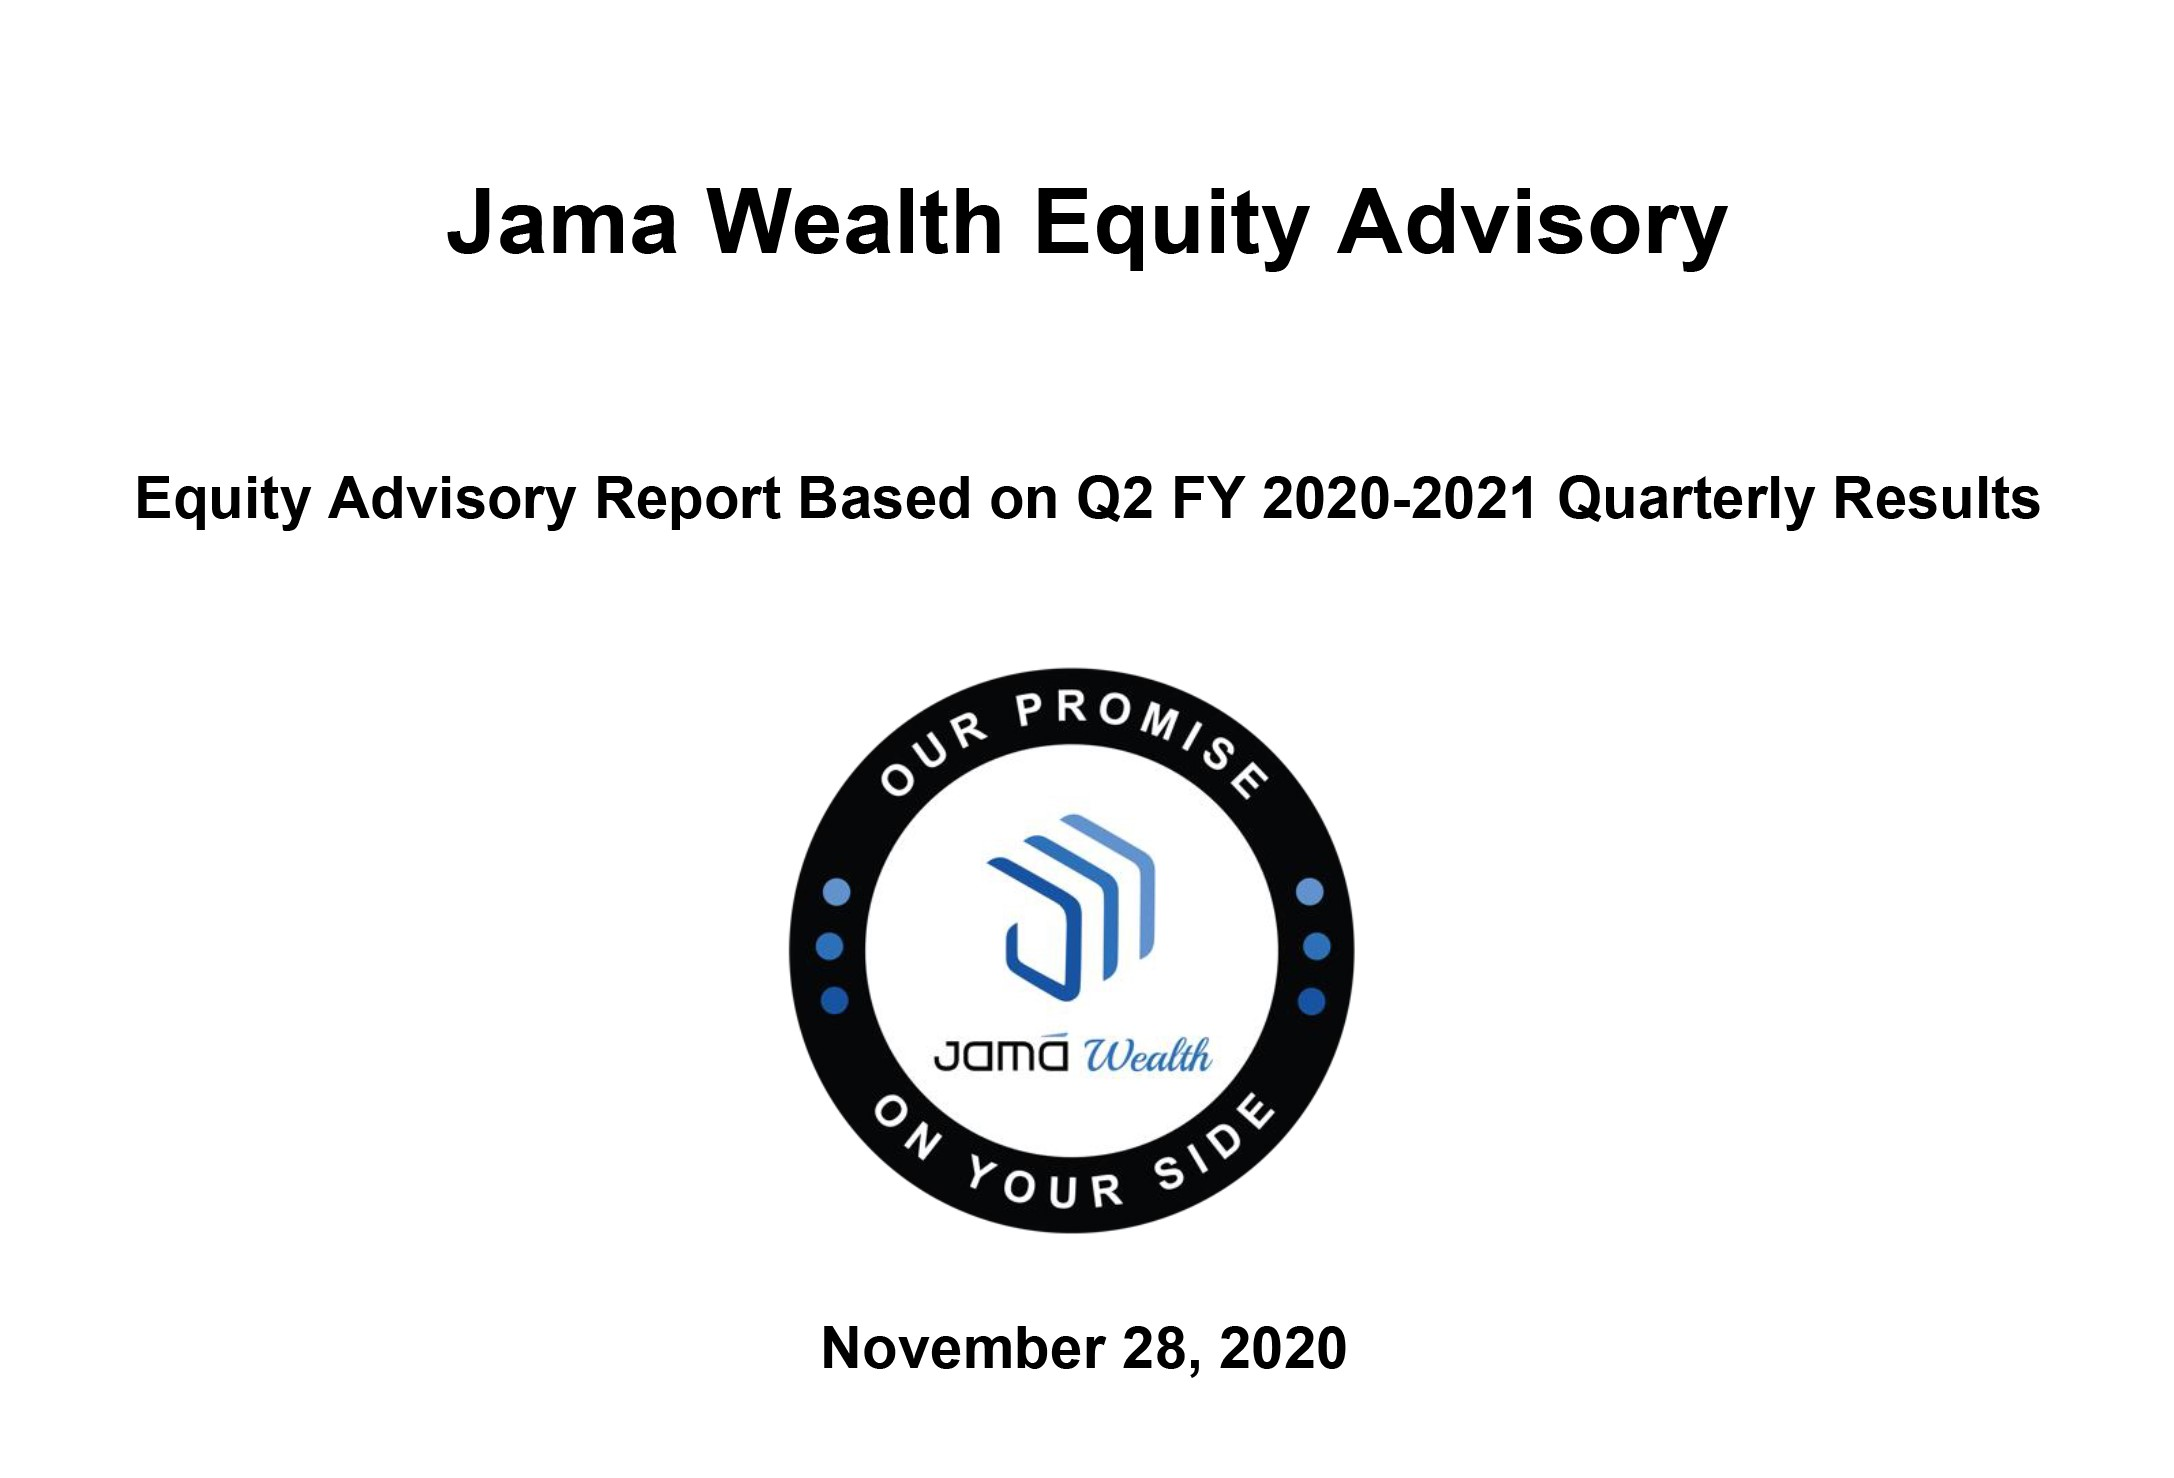 Jama Wealth Equity Advisory Report  Q2 FY 2020-2021 Quarterly Results